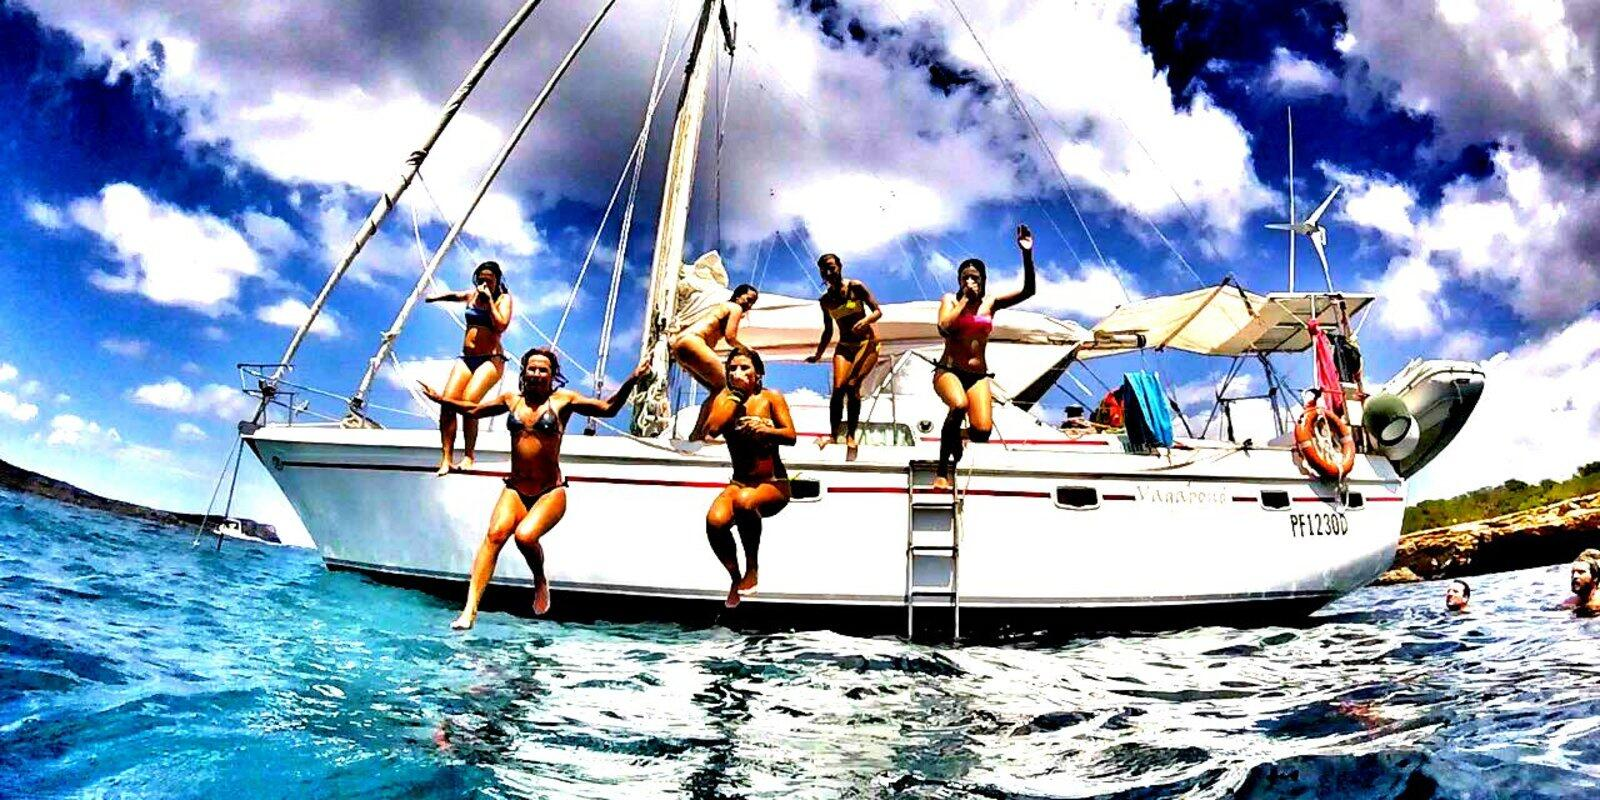 Cruises in the Tuscan Archipelago with Professional Skipper and Hostess Cook. Pamper yourself in the waves!